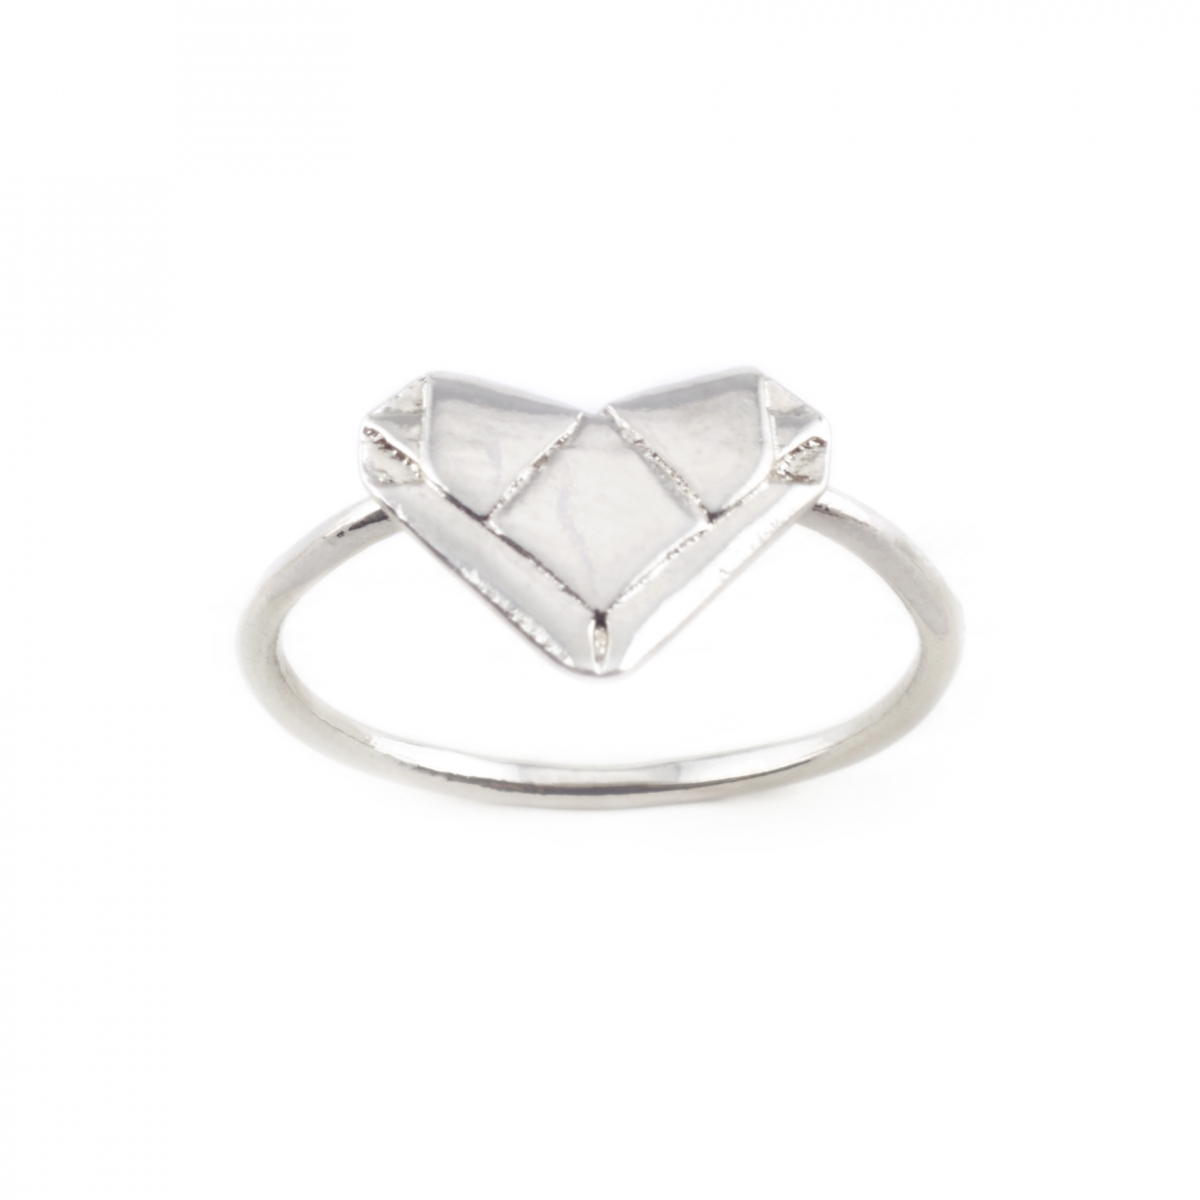 SILVER ORIGAMI HEART RING | Fashion Jewellery - photo#20